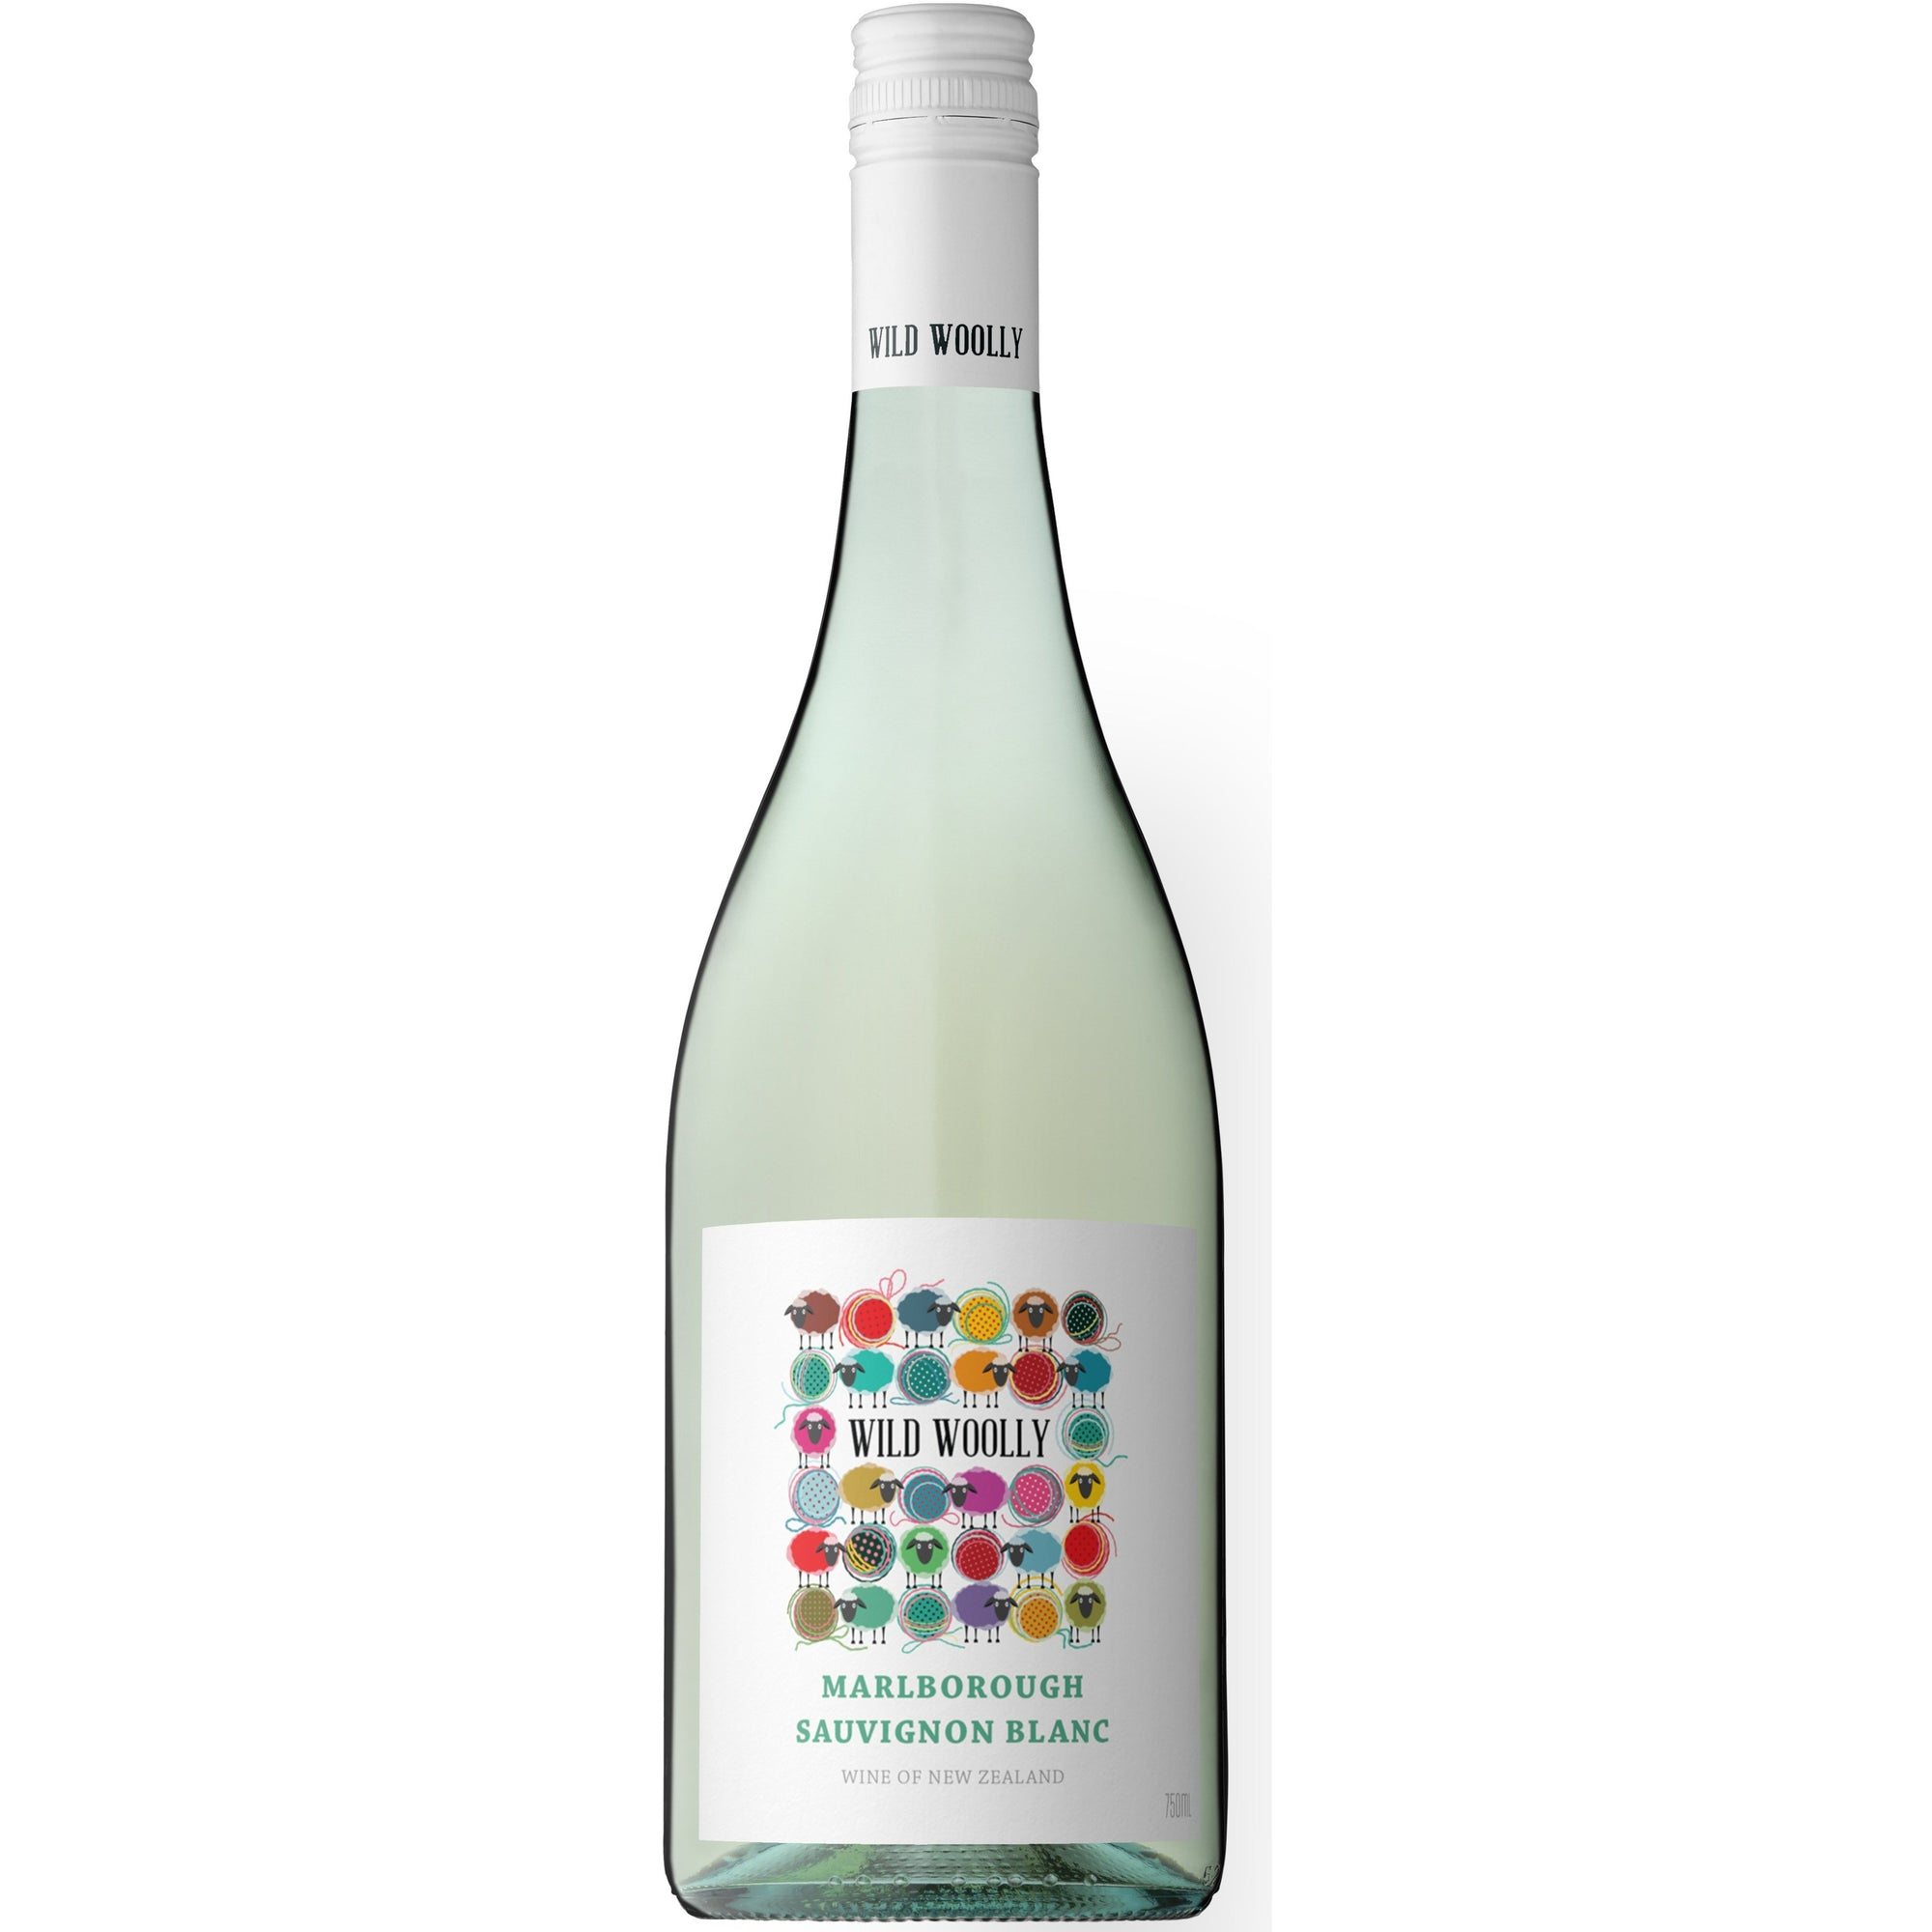 Wild Woolly Marlborough Sauvignon Blanc 2020 (12 Bottles)